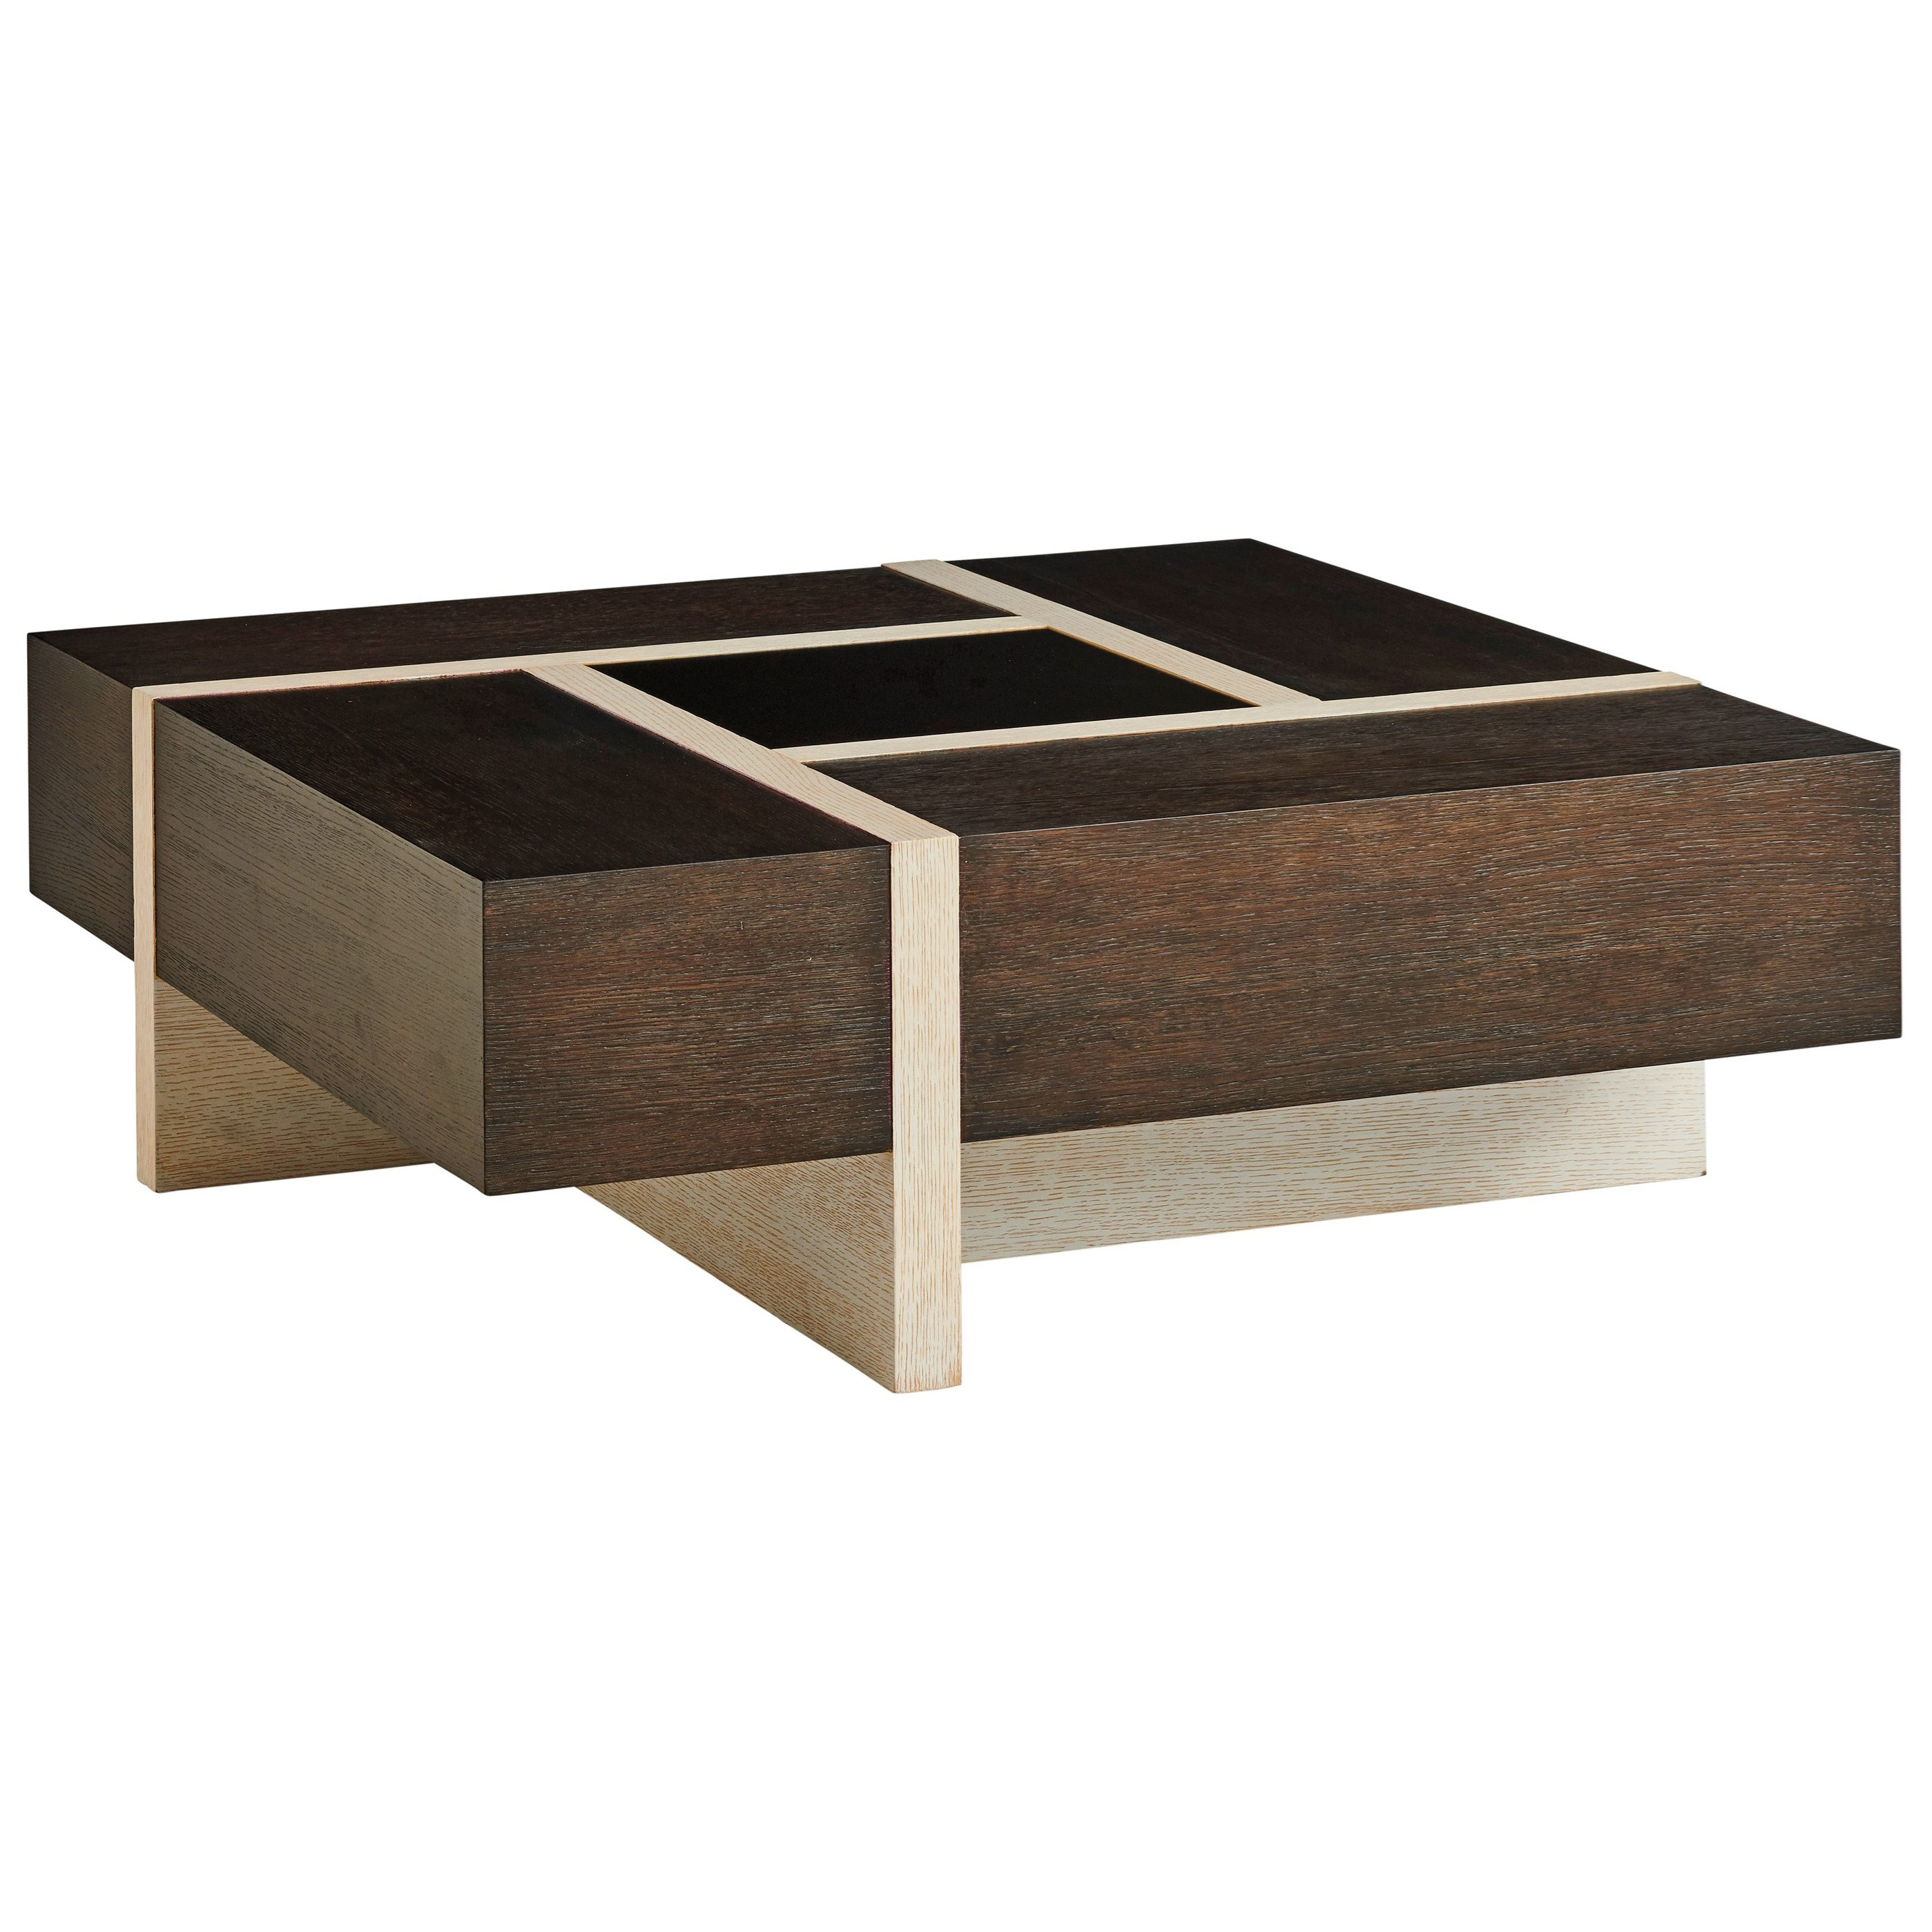 Park City Solace Square Cocktail Table by Barclay Butera at Baer's Furniture